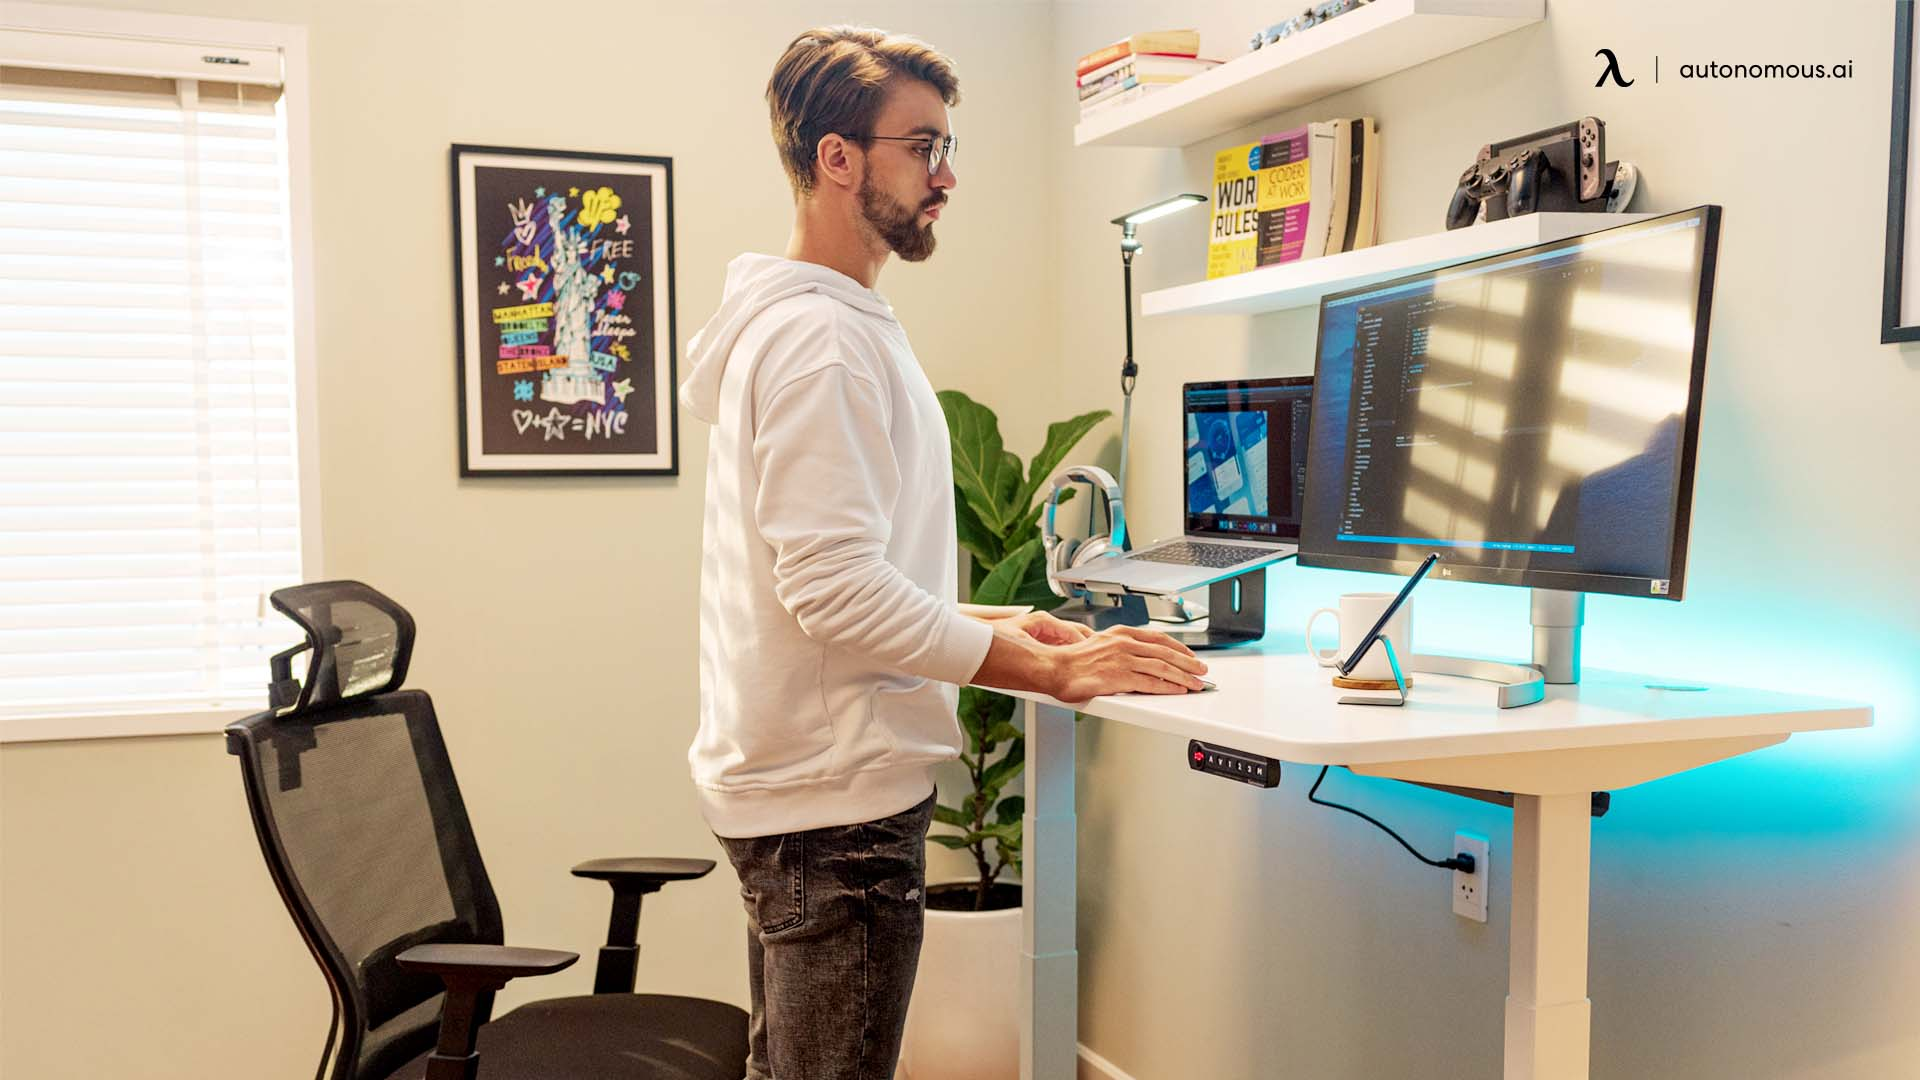 Should Standing Desks Be Automated?